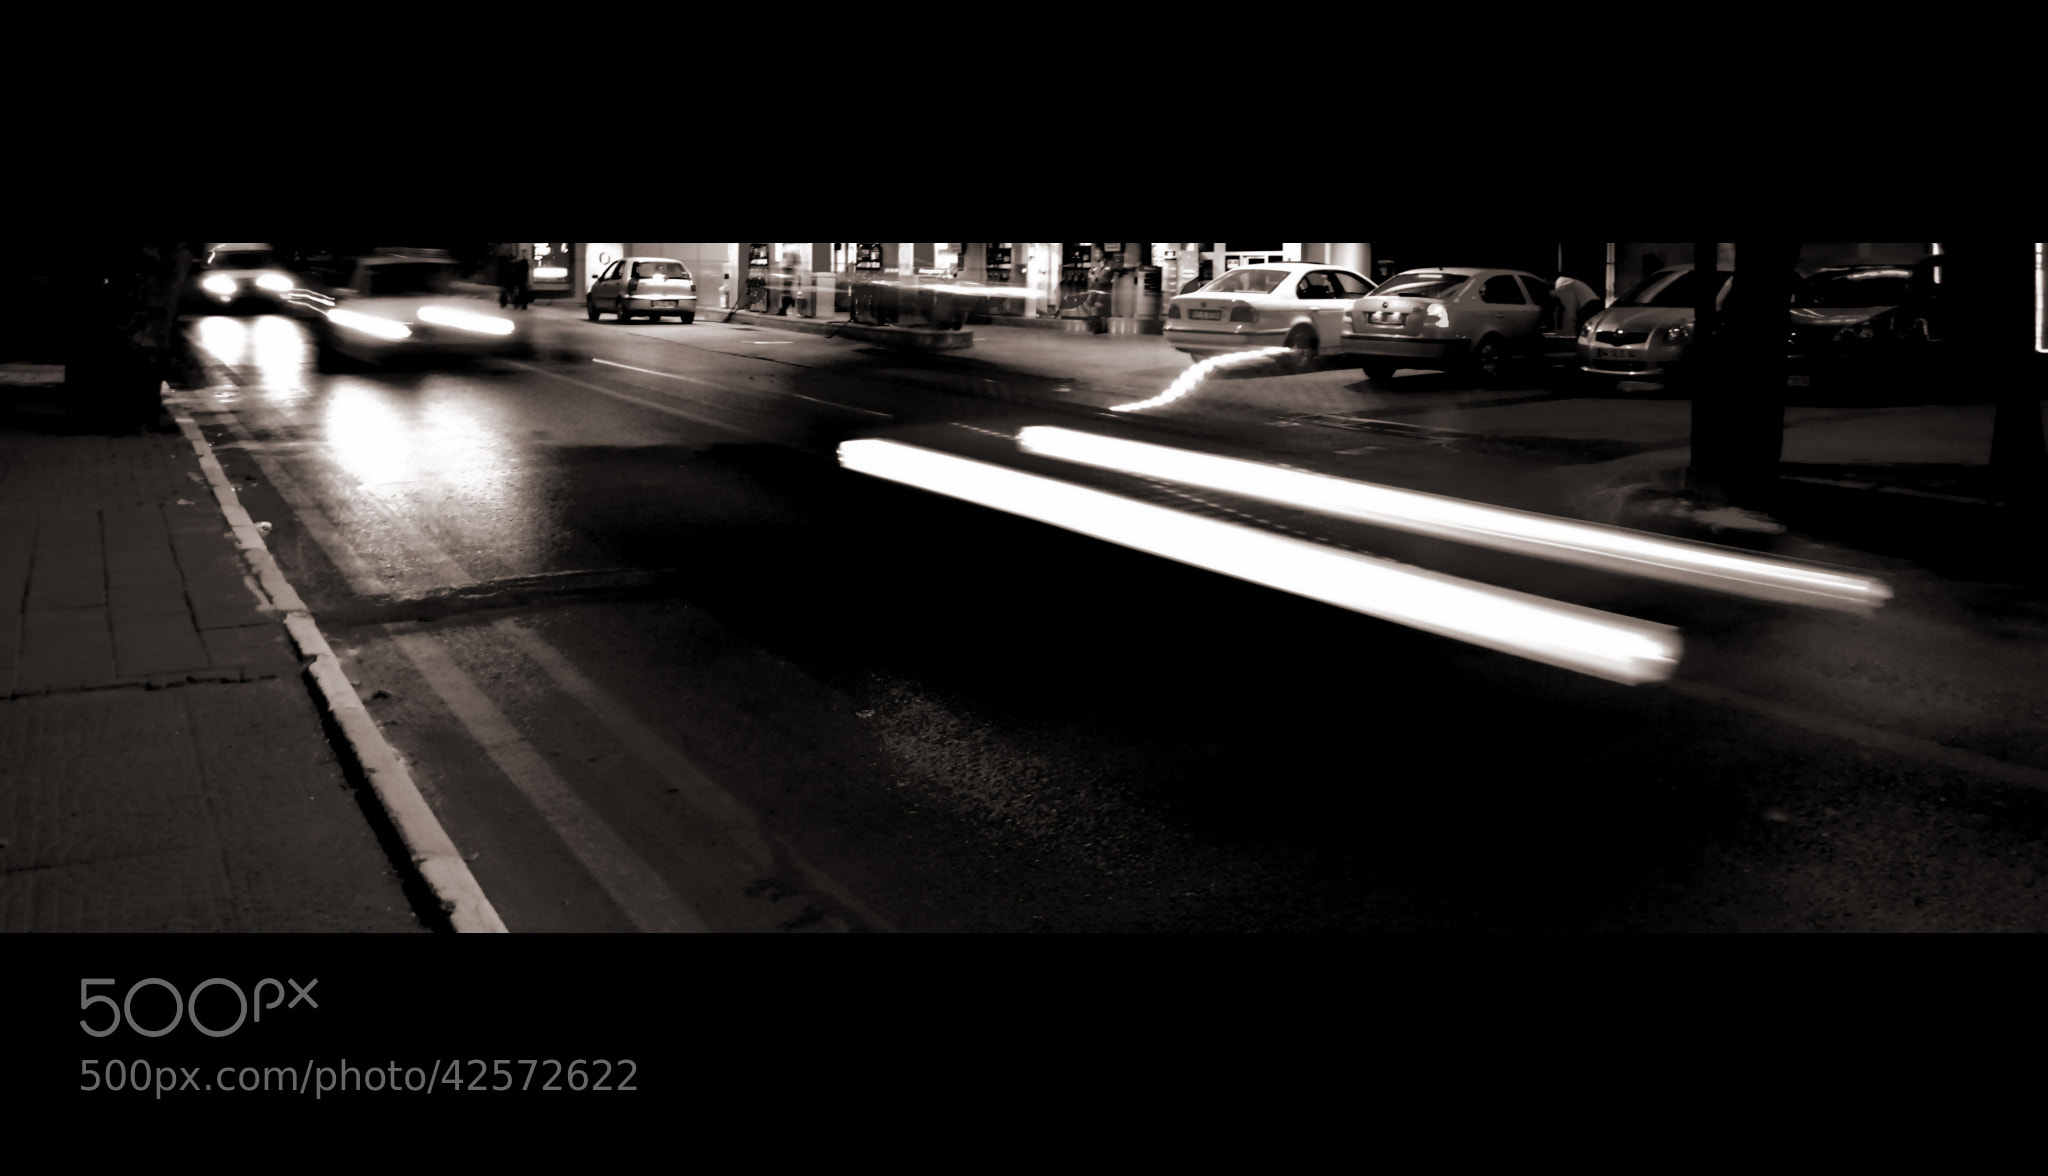 Photograph GHOST İN THE ROAD by suat küçükaydın on 500px